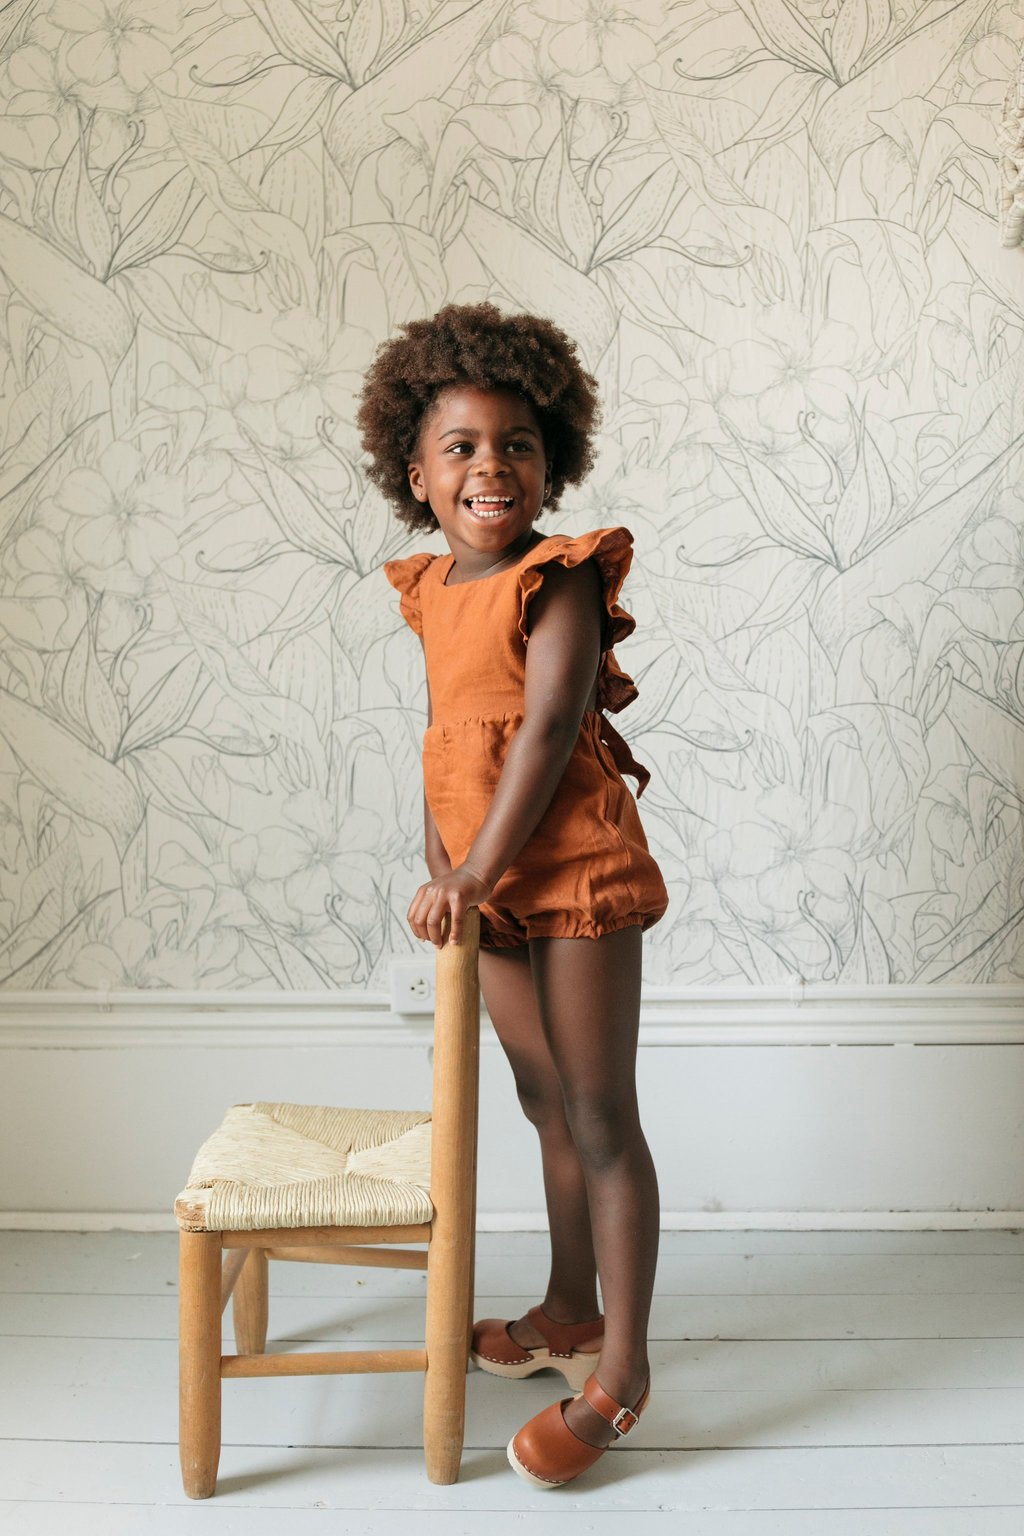 Paul & Paula: Beautiful fall linens for childre n by Fin & Vince